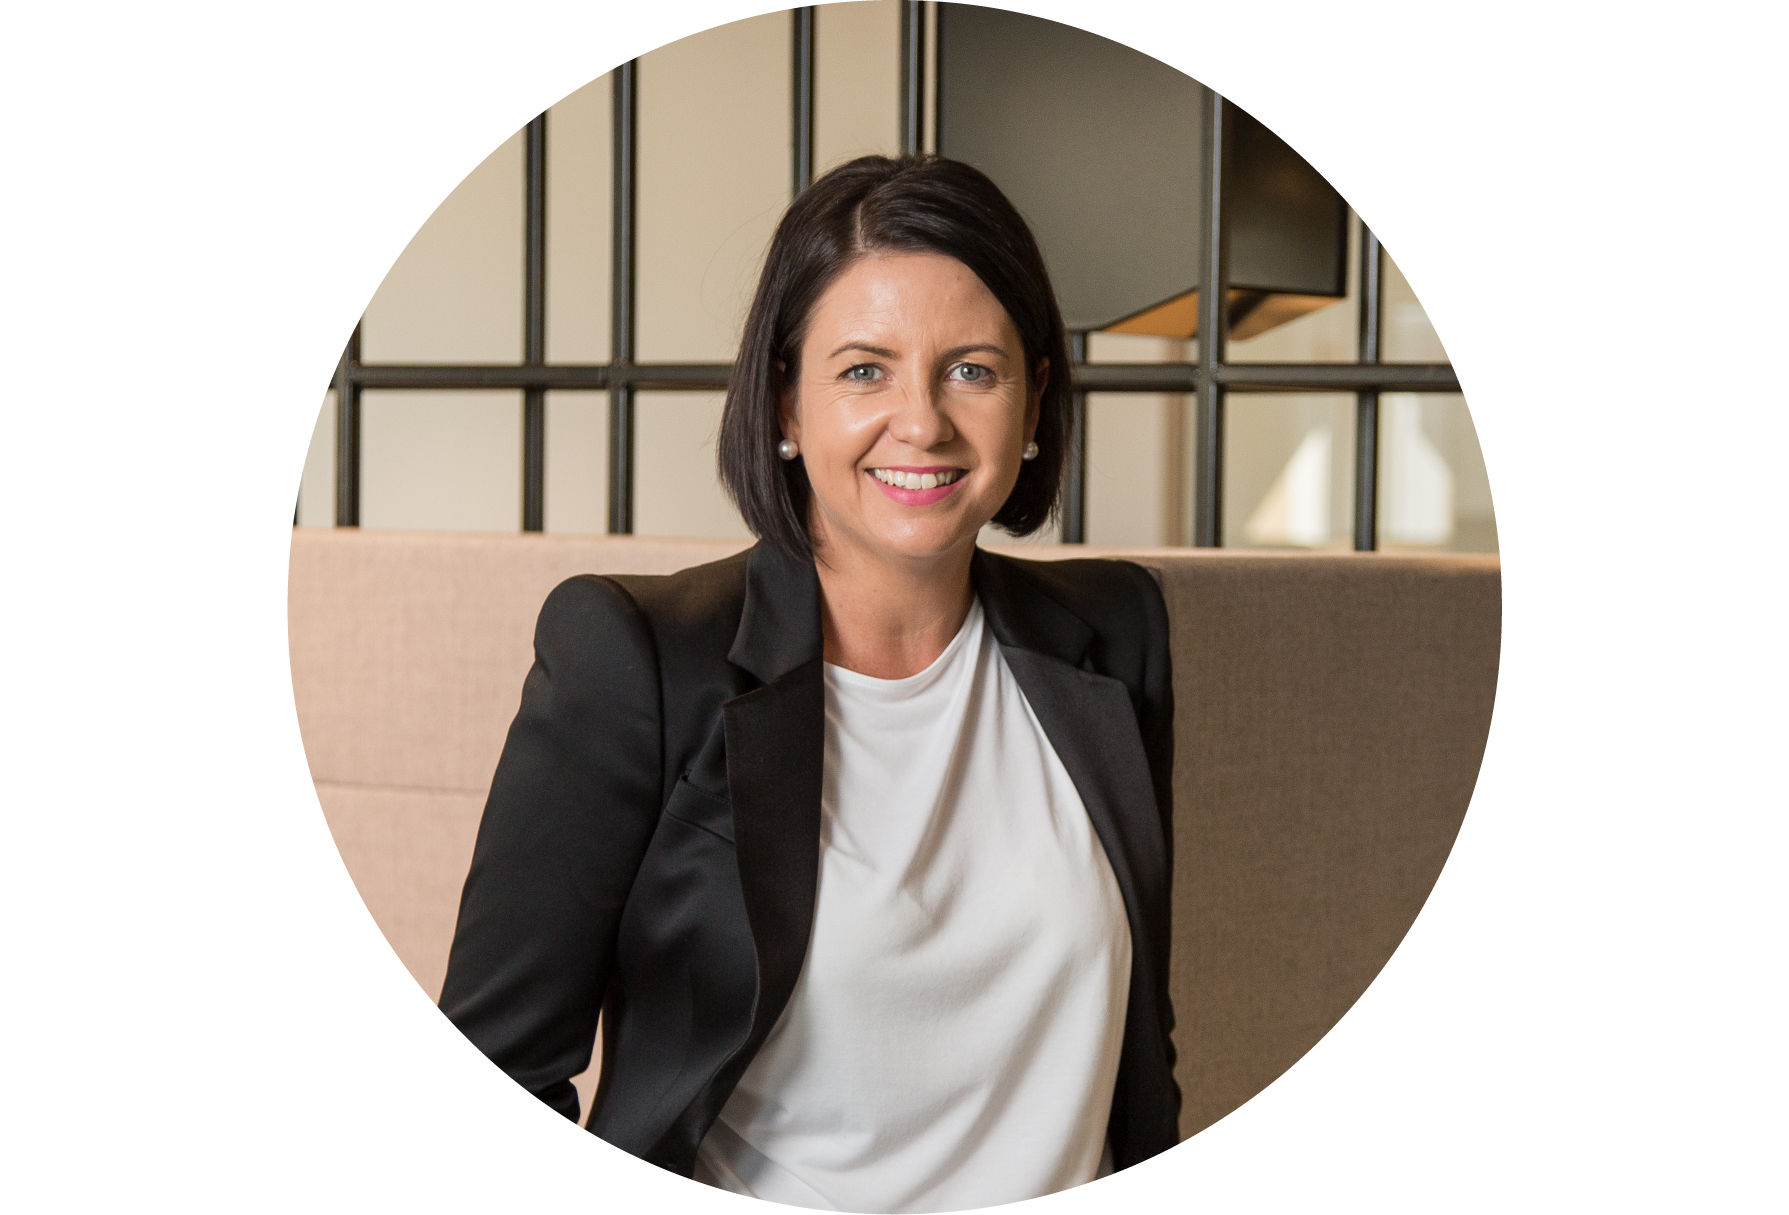 Tracey Mylecharane - Solictor - Tracey Mylecharane has over 15 years experience in Law, including 12+ years of professional practice (6 of those years at partner level).Both in court and out, Tracey has come to never underestimate the power of emotions and principles when people feel they have been wronged. She has worked with some of the country's best Barristers and Senior Counsel to fight the fight on behalf of her clients, and has developed a unique perspective on the value attached to exploring alternative options to legal proceedings.